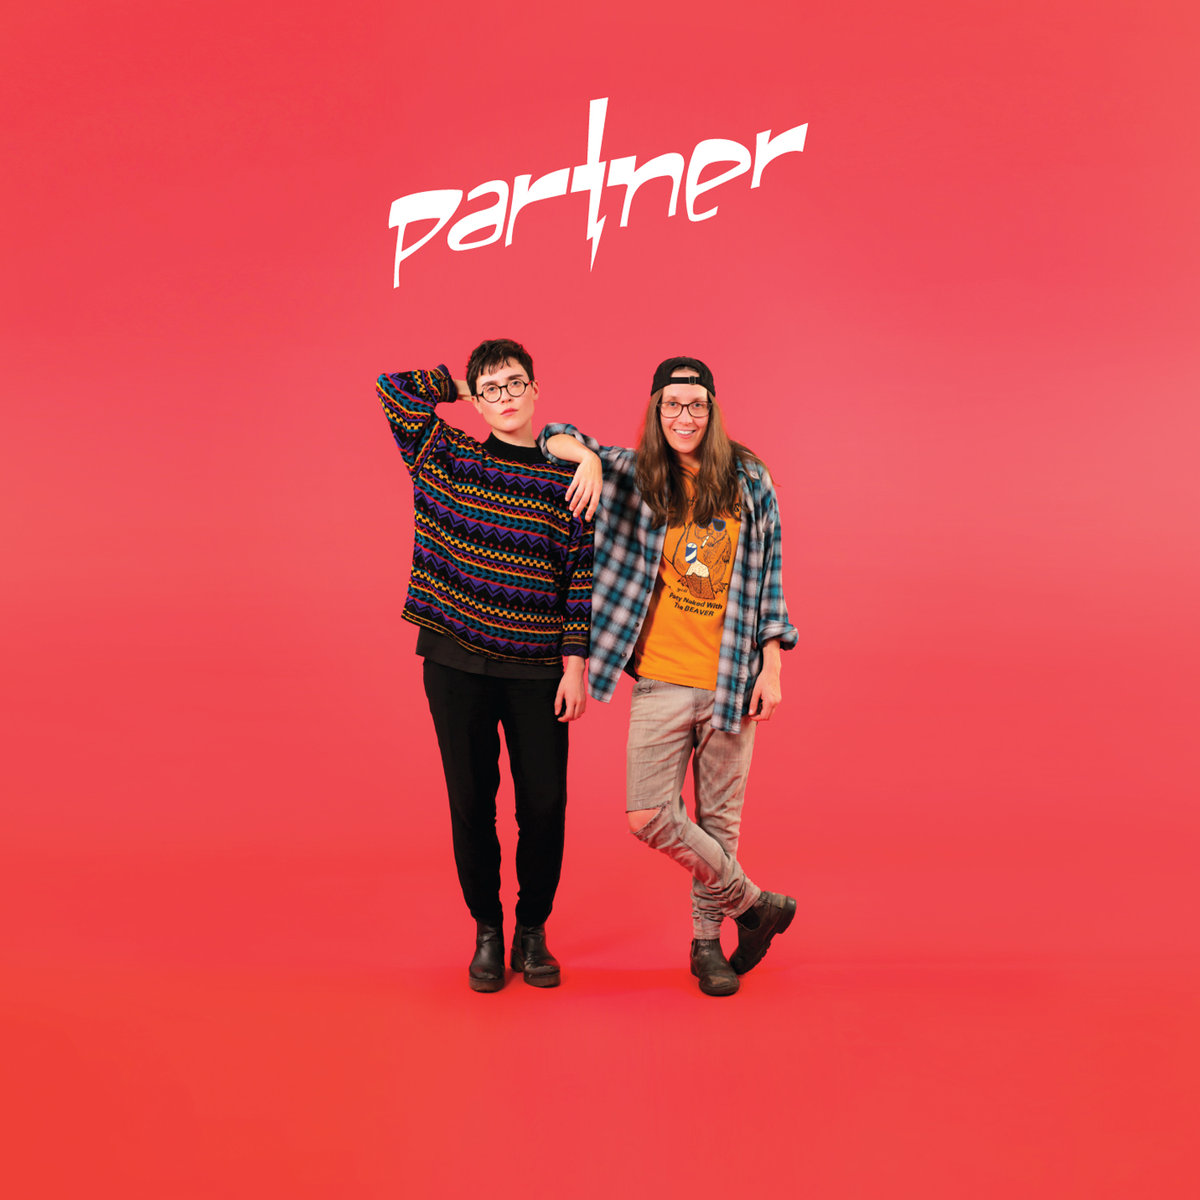 In Search of Lost Time  -Partner   A howlingly funny guitar rock record of Canadian young-adult queer melodrama. Nothing on the album is necessarily deep or profound, but it is both catchy and hooky with snark and heart to spare.